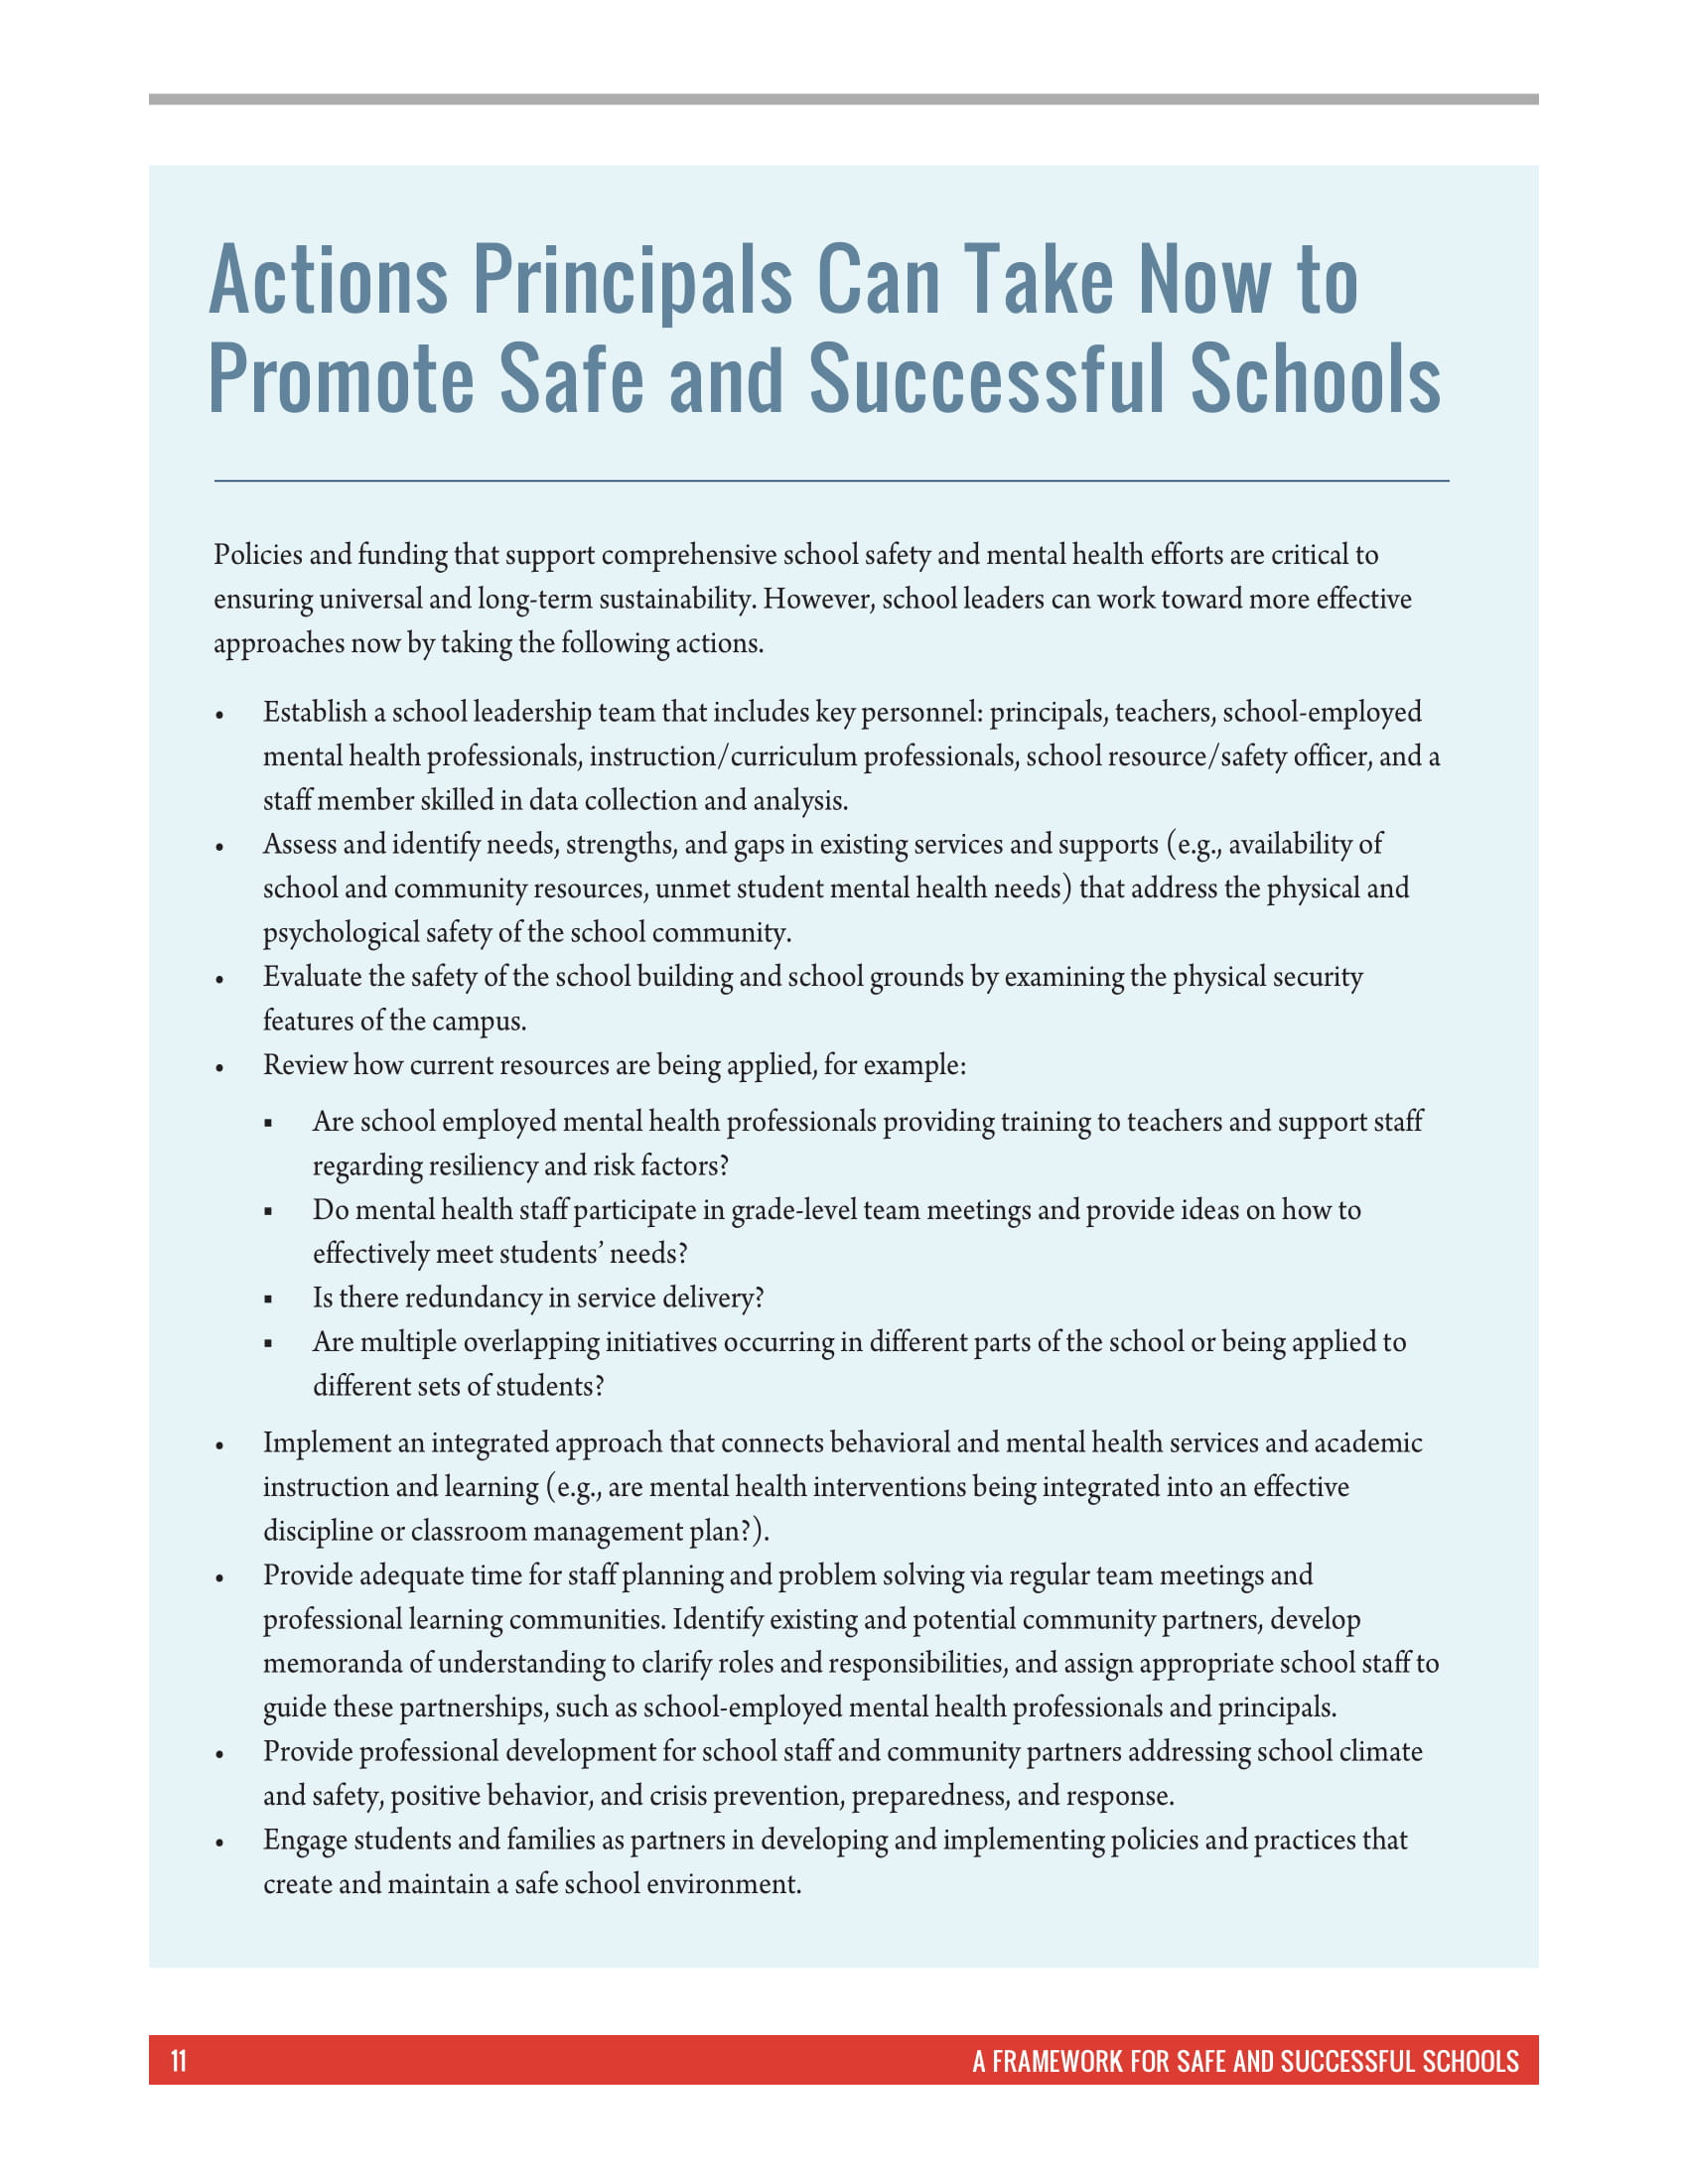 Framework_for_Safe_and_Successful_School_Environments (1)-12.jpg